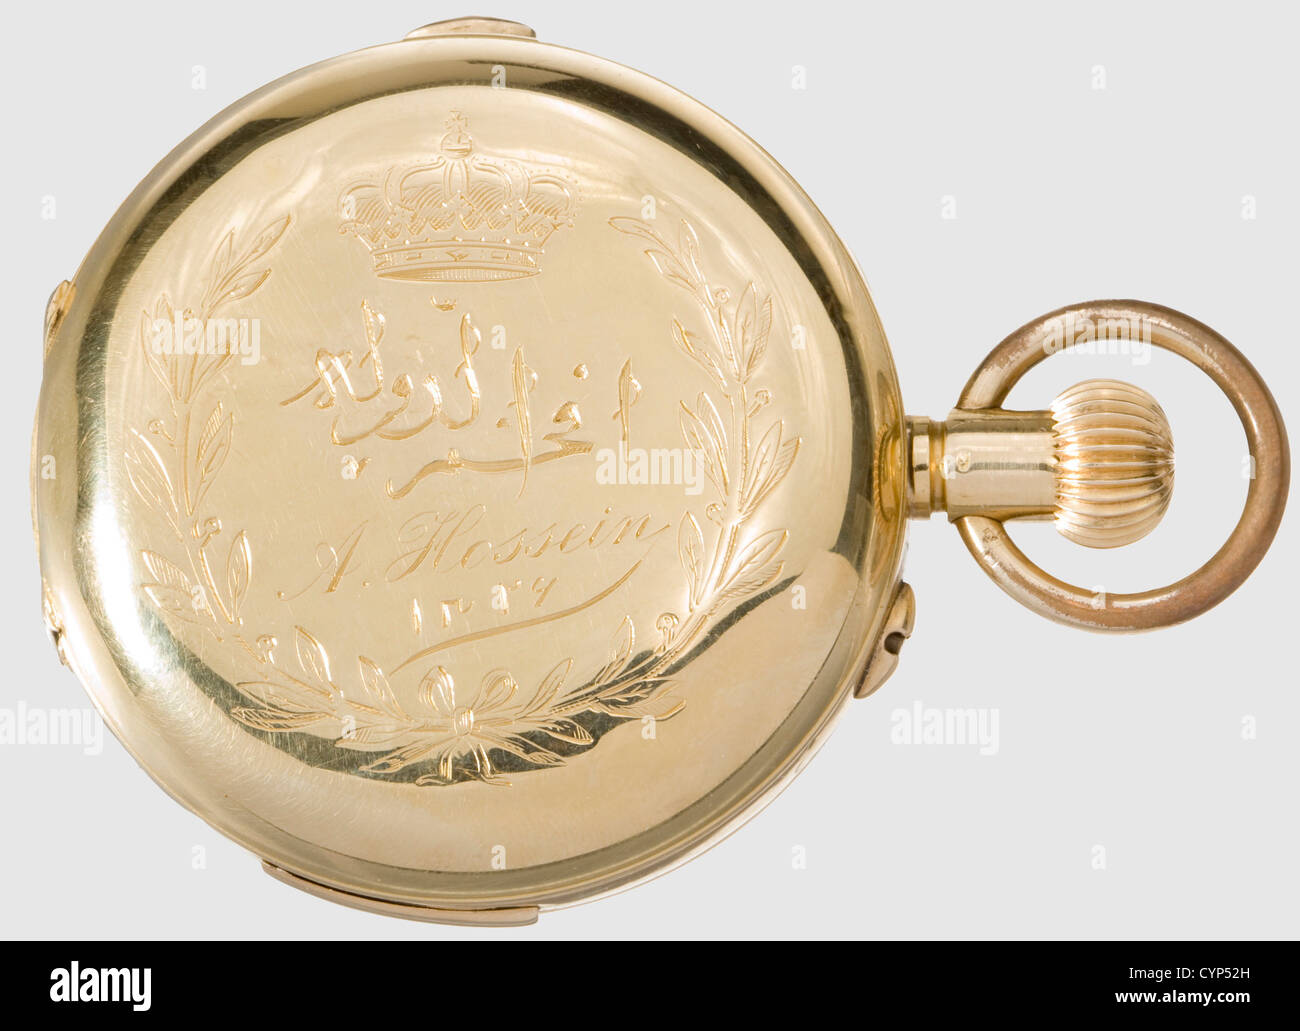 A pocket watch, presented to A. Hossein, Gold savonette with minute repetition and chronograph. The exterior of - Stock Image